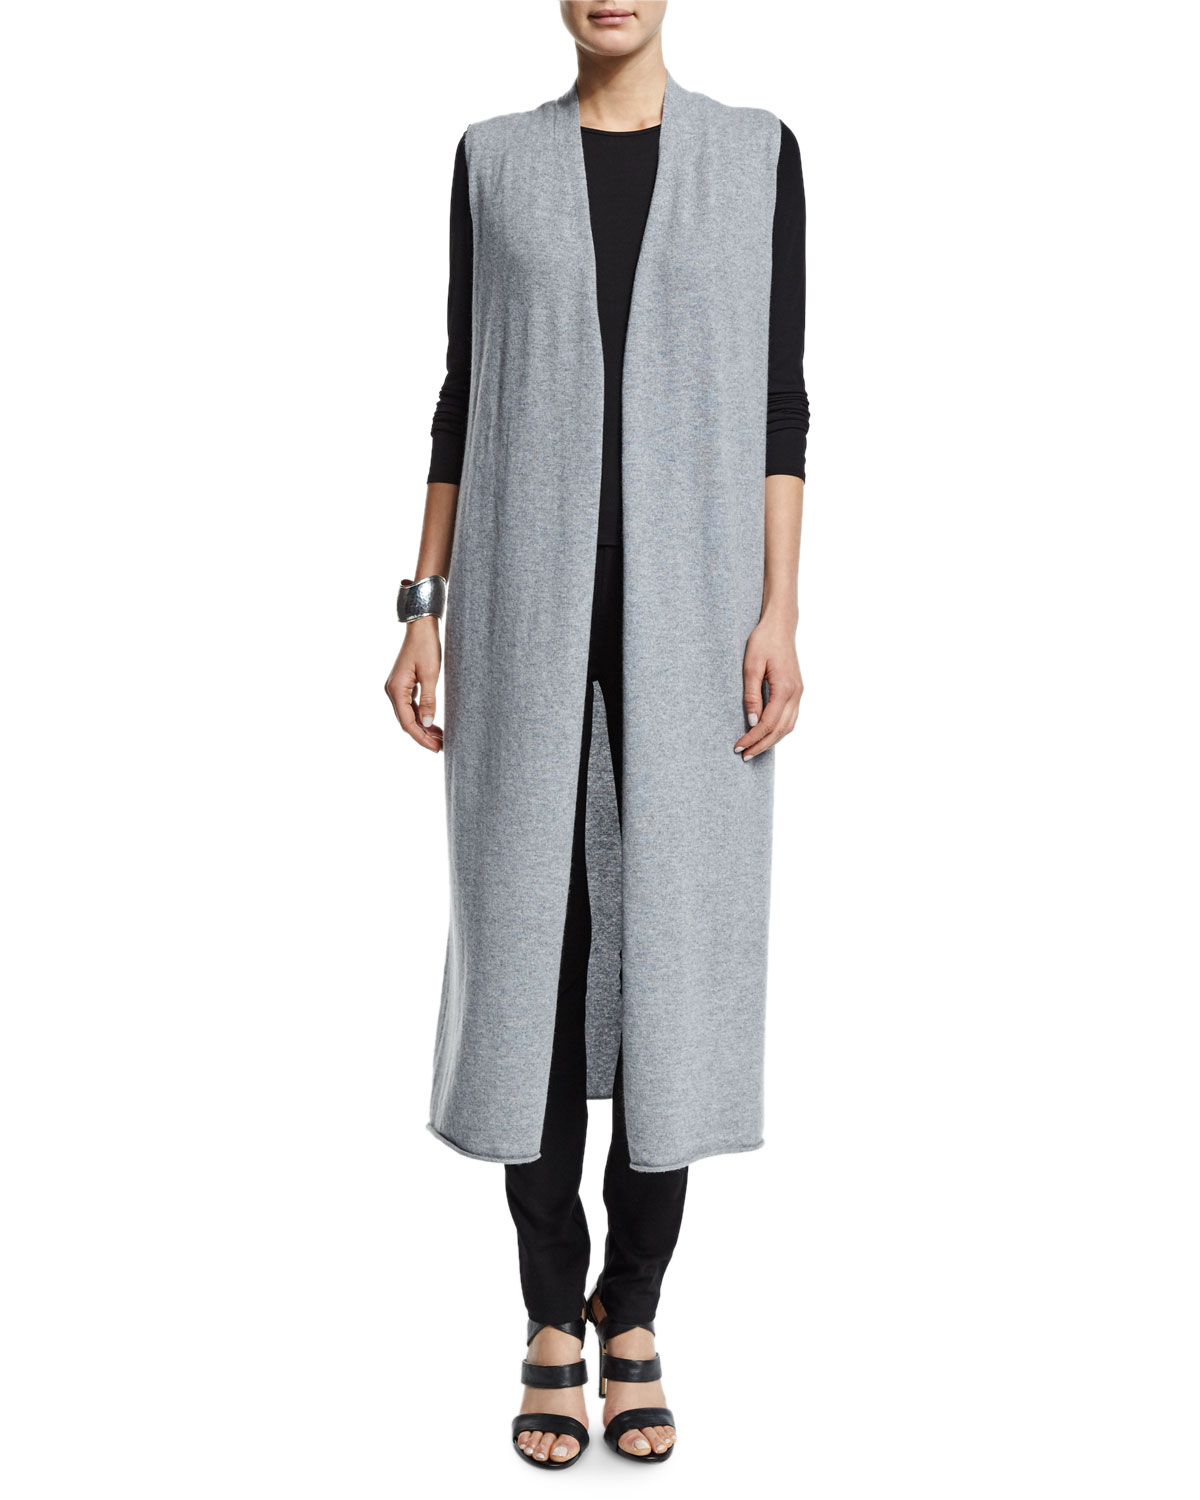 Drama Long Cashmere Vest, Moon, Women's, Size: LARGE (14/16) - Eileen Fisher